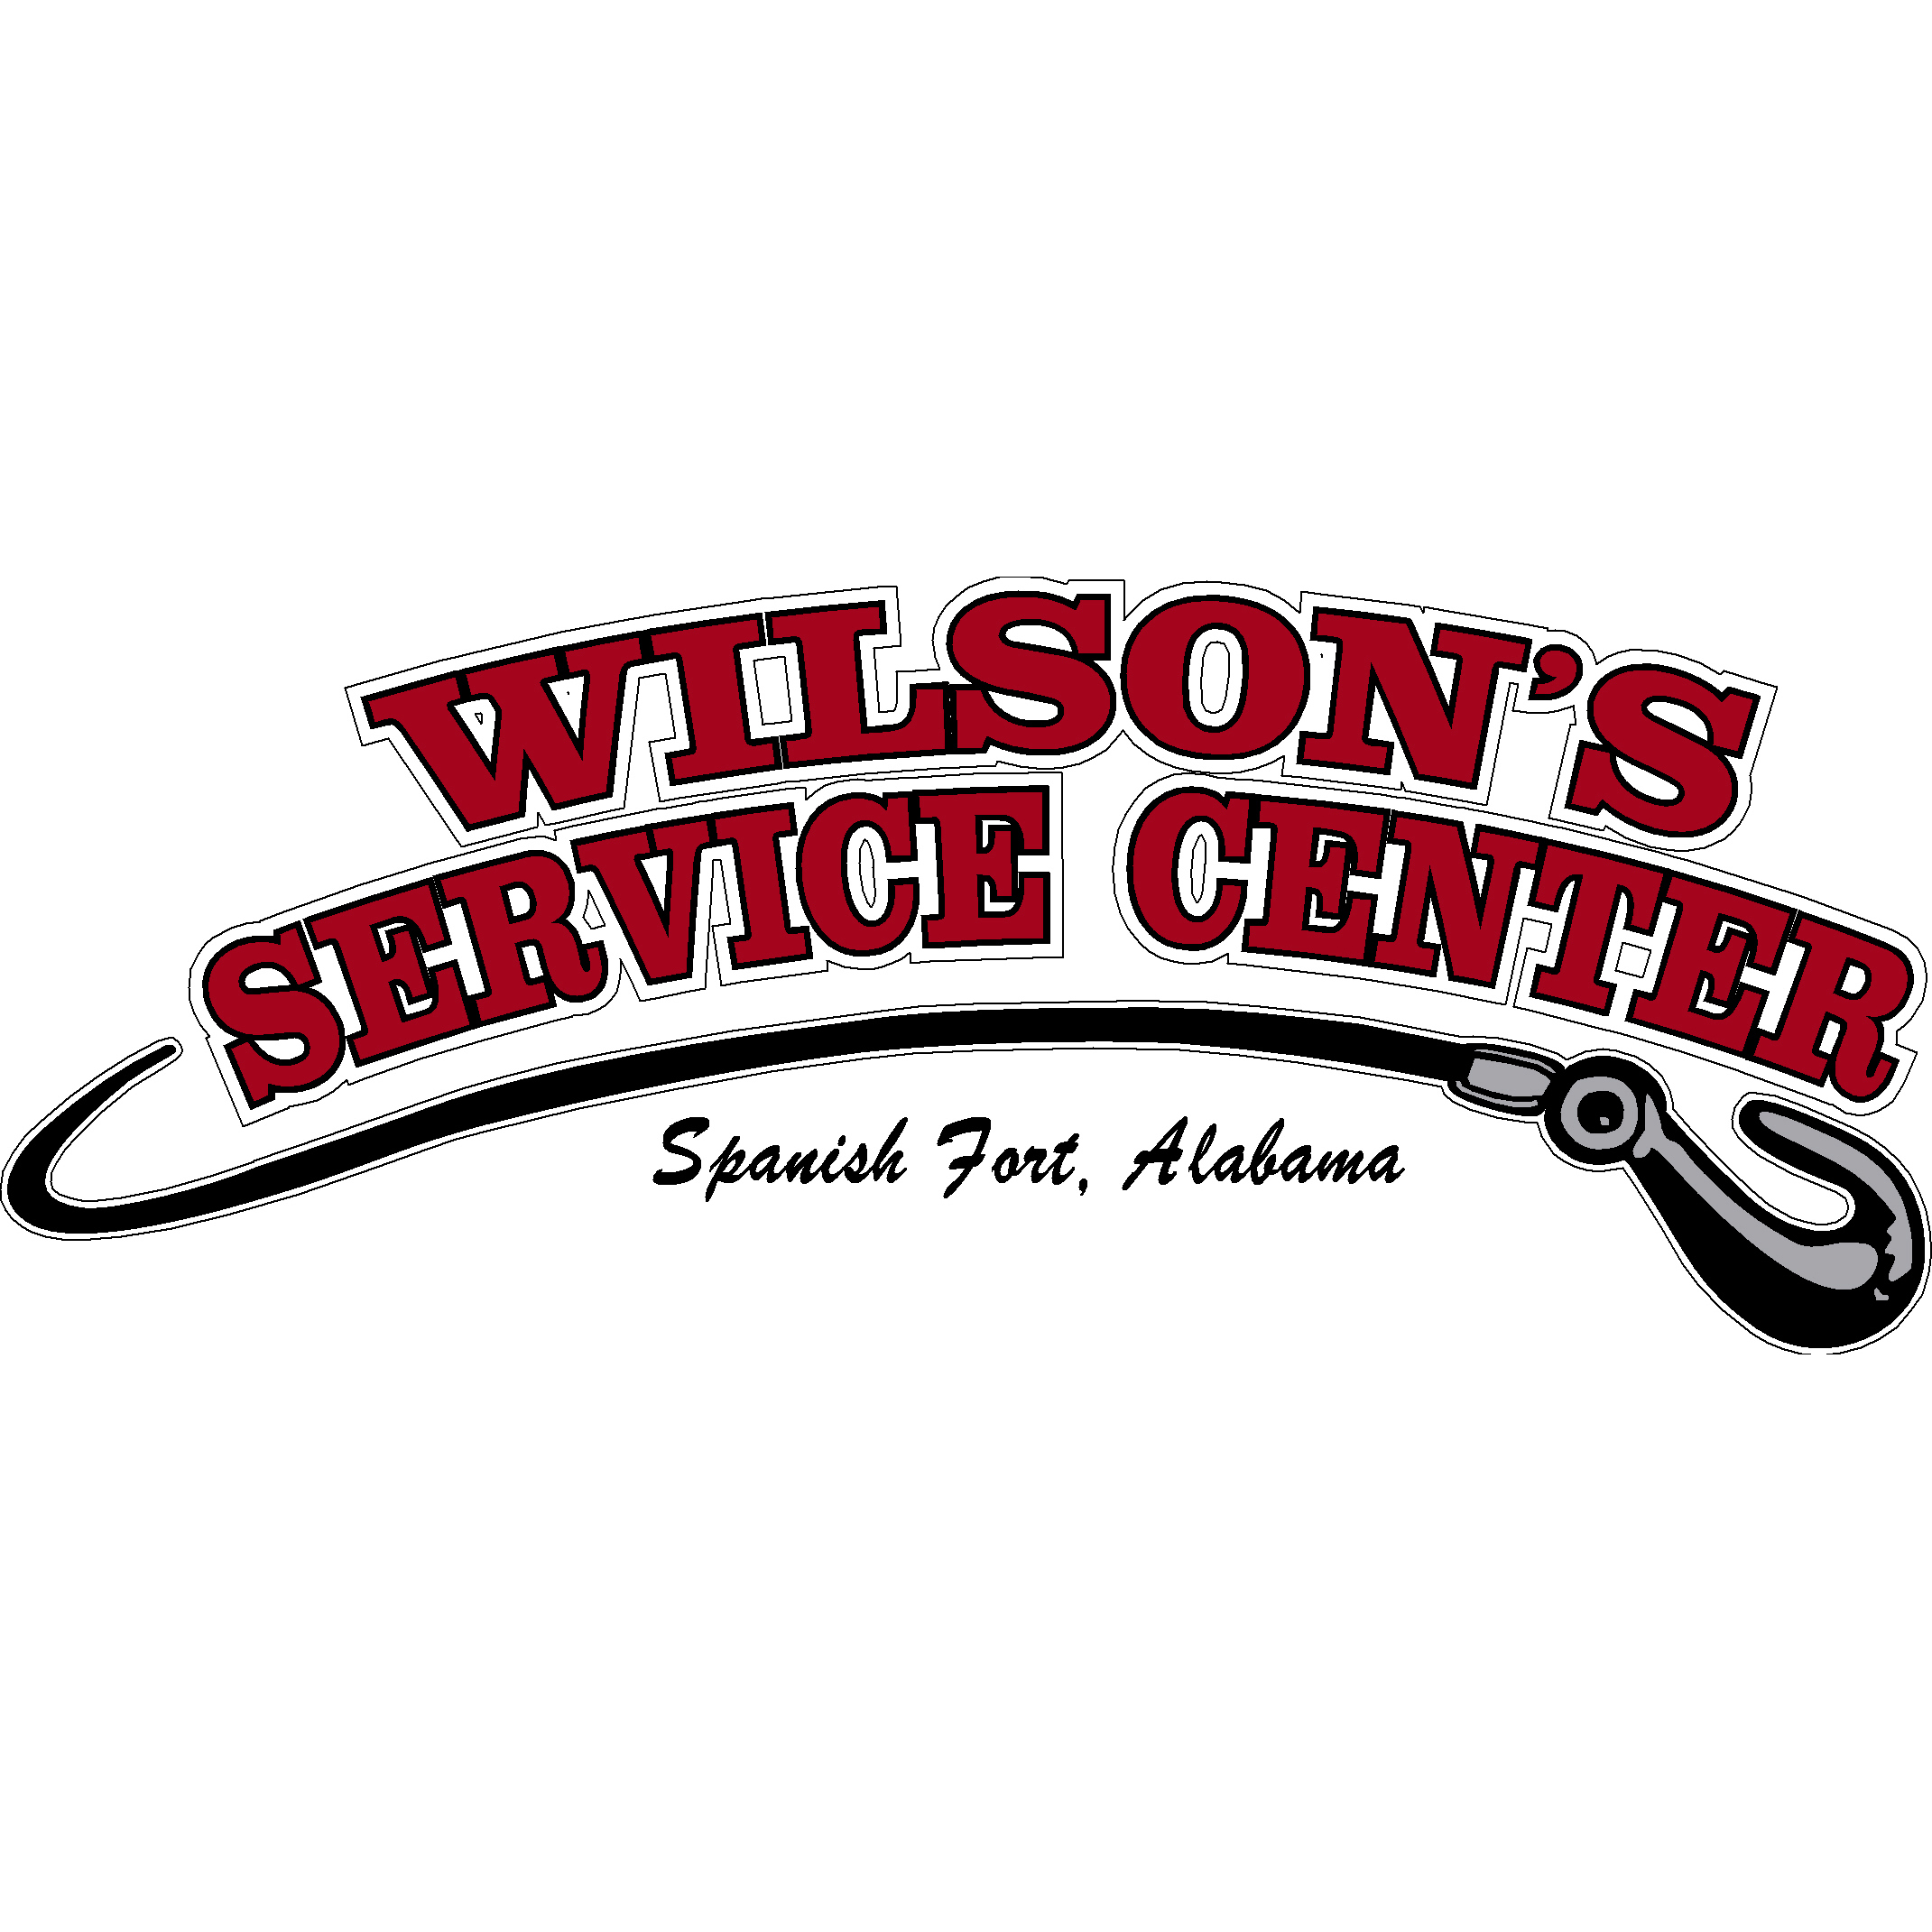 Wilson 39 s service center auto repair spanish fort al for General motors service center